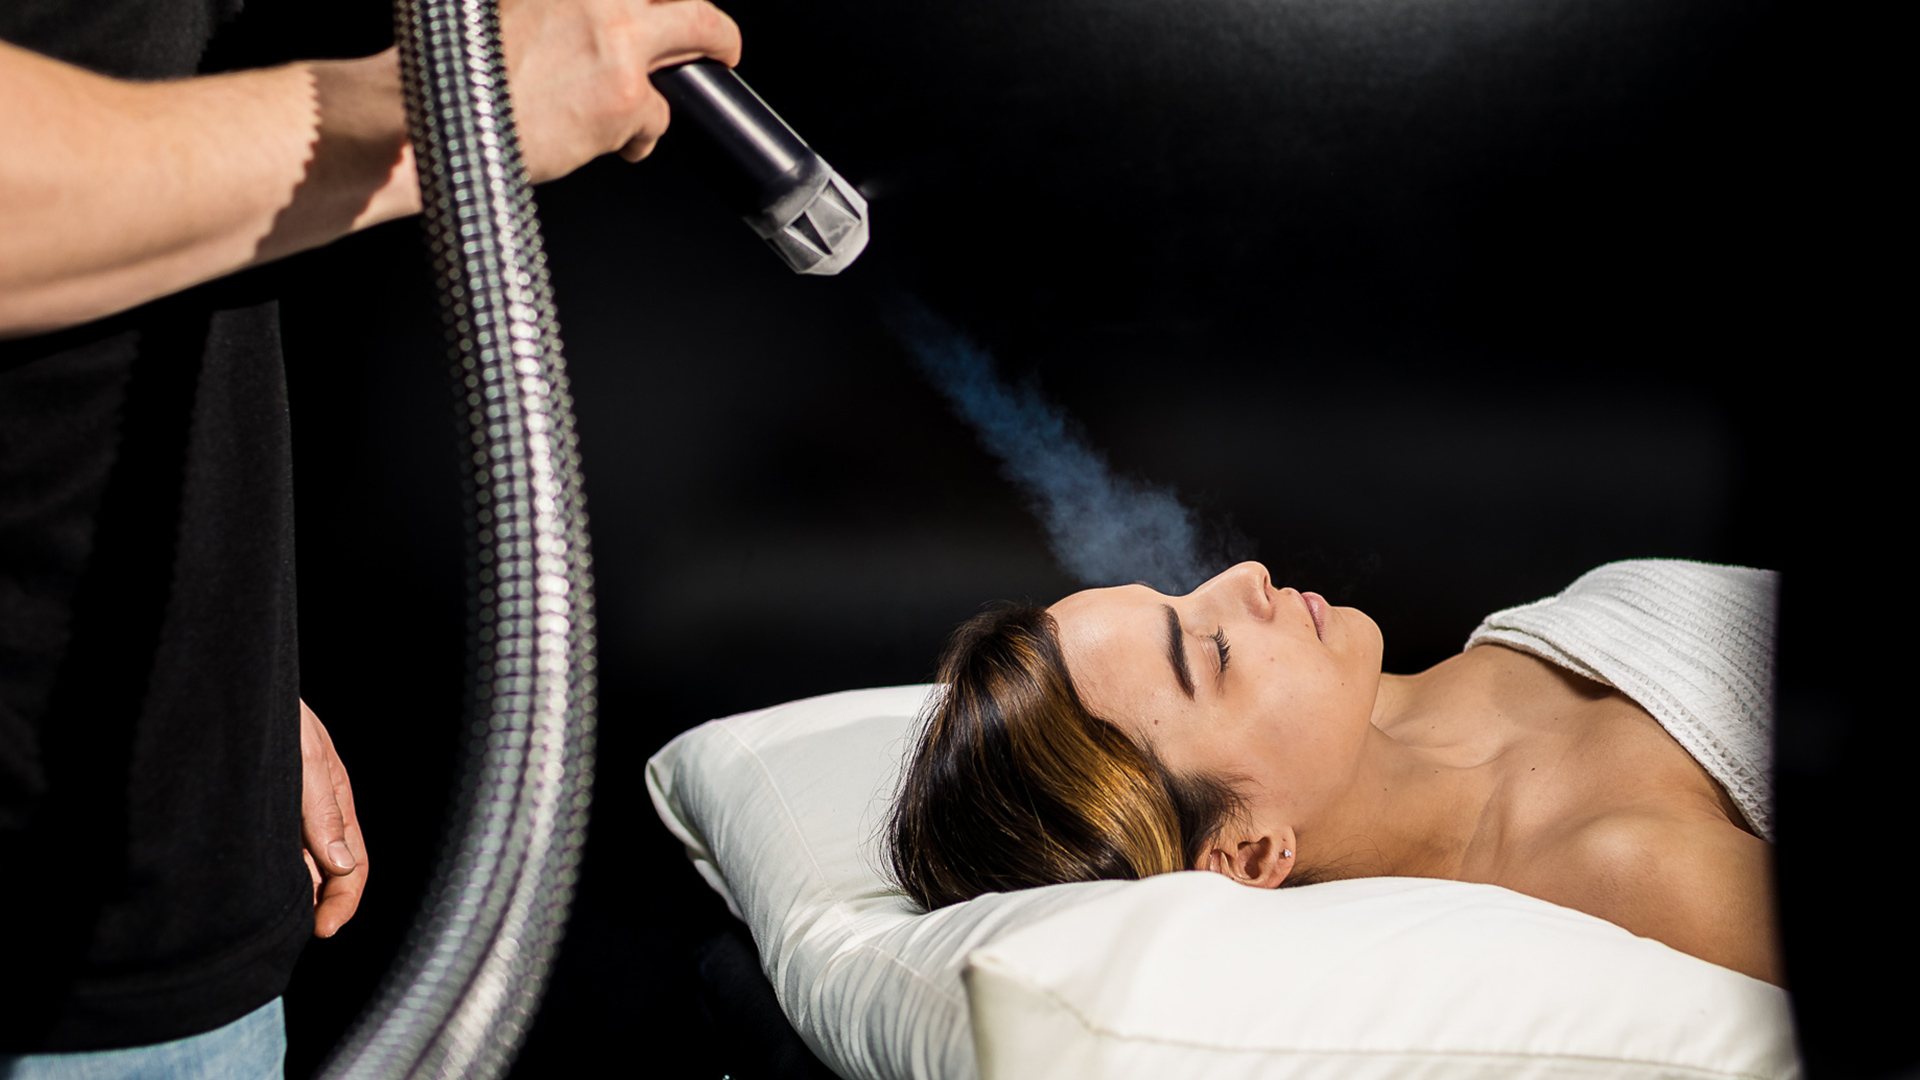 attendant applying localized cryotherapy onto guest's face